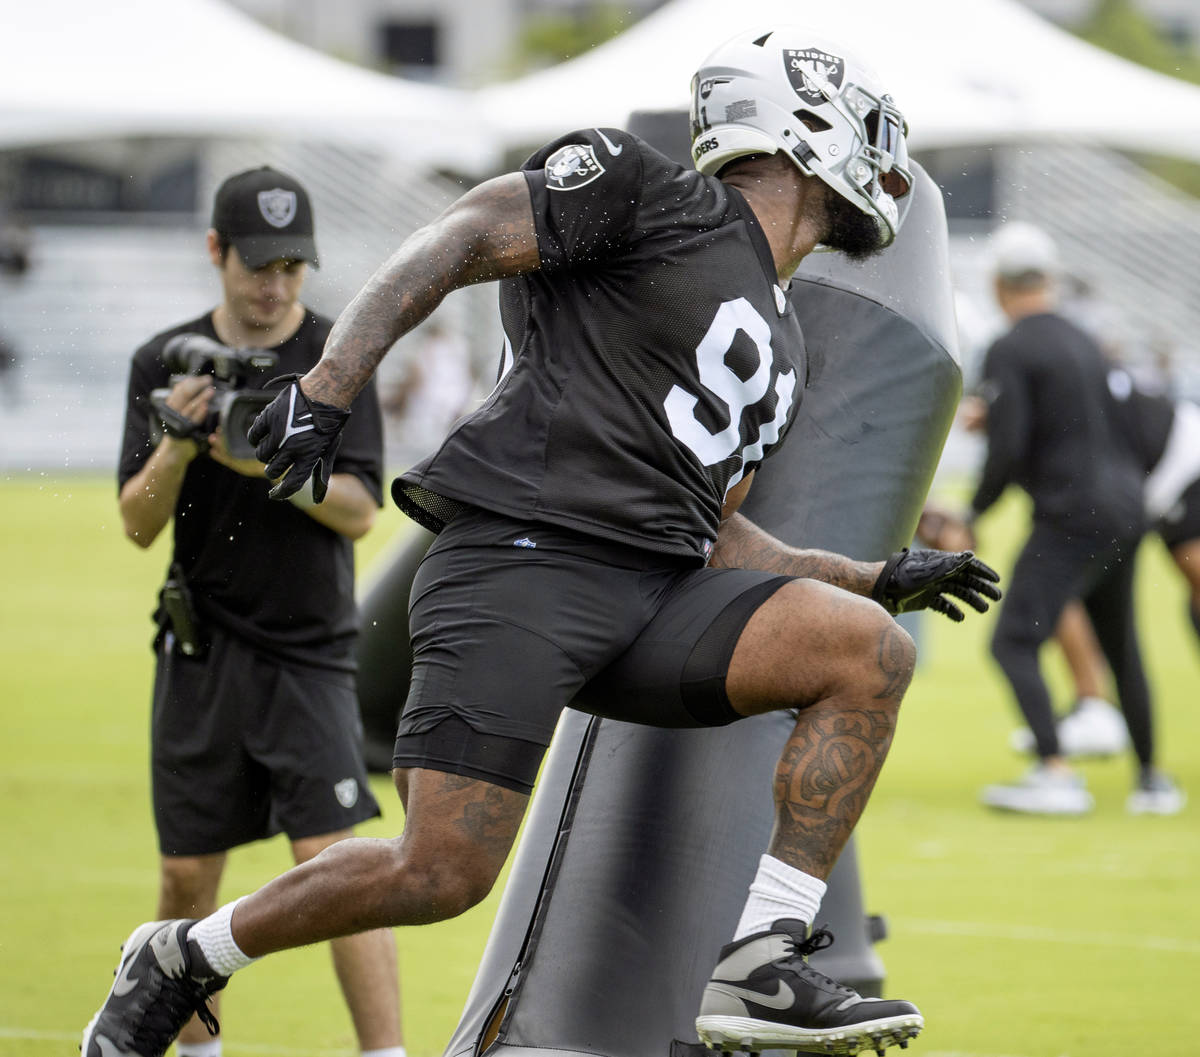 Raiders defensive end Yannick Ngakoue (91) runs around an obstacle during training camp at the ...